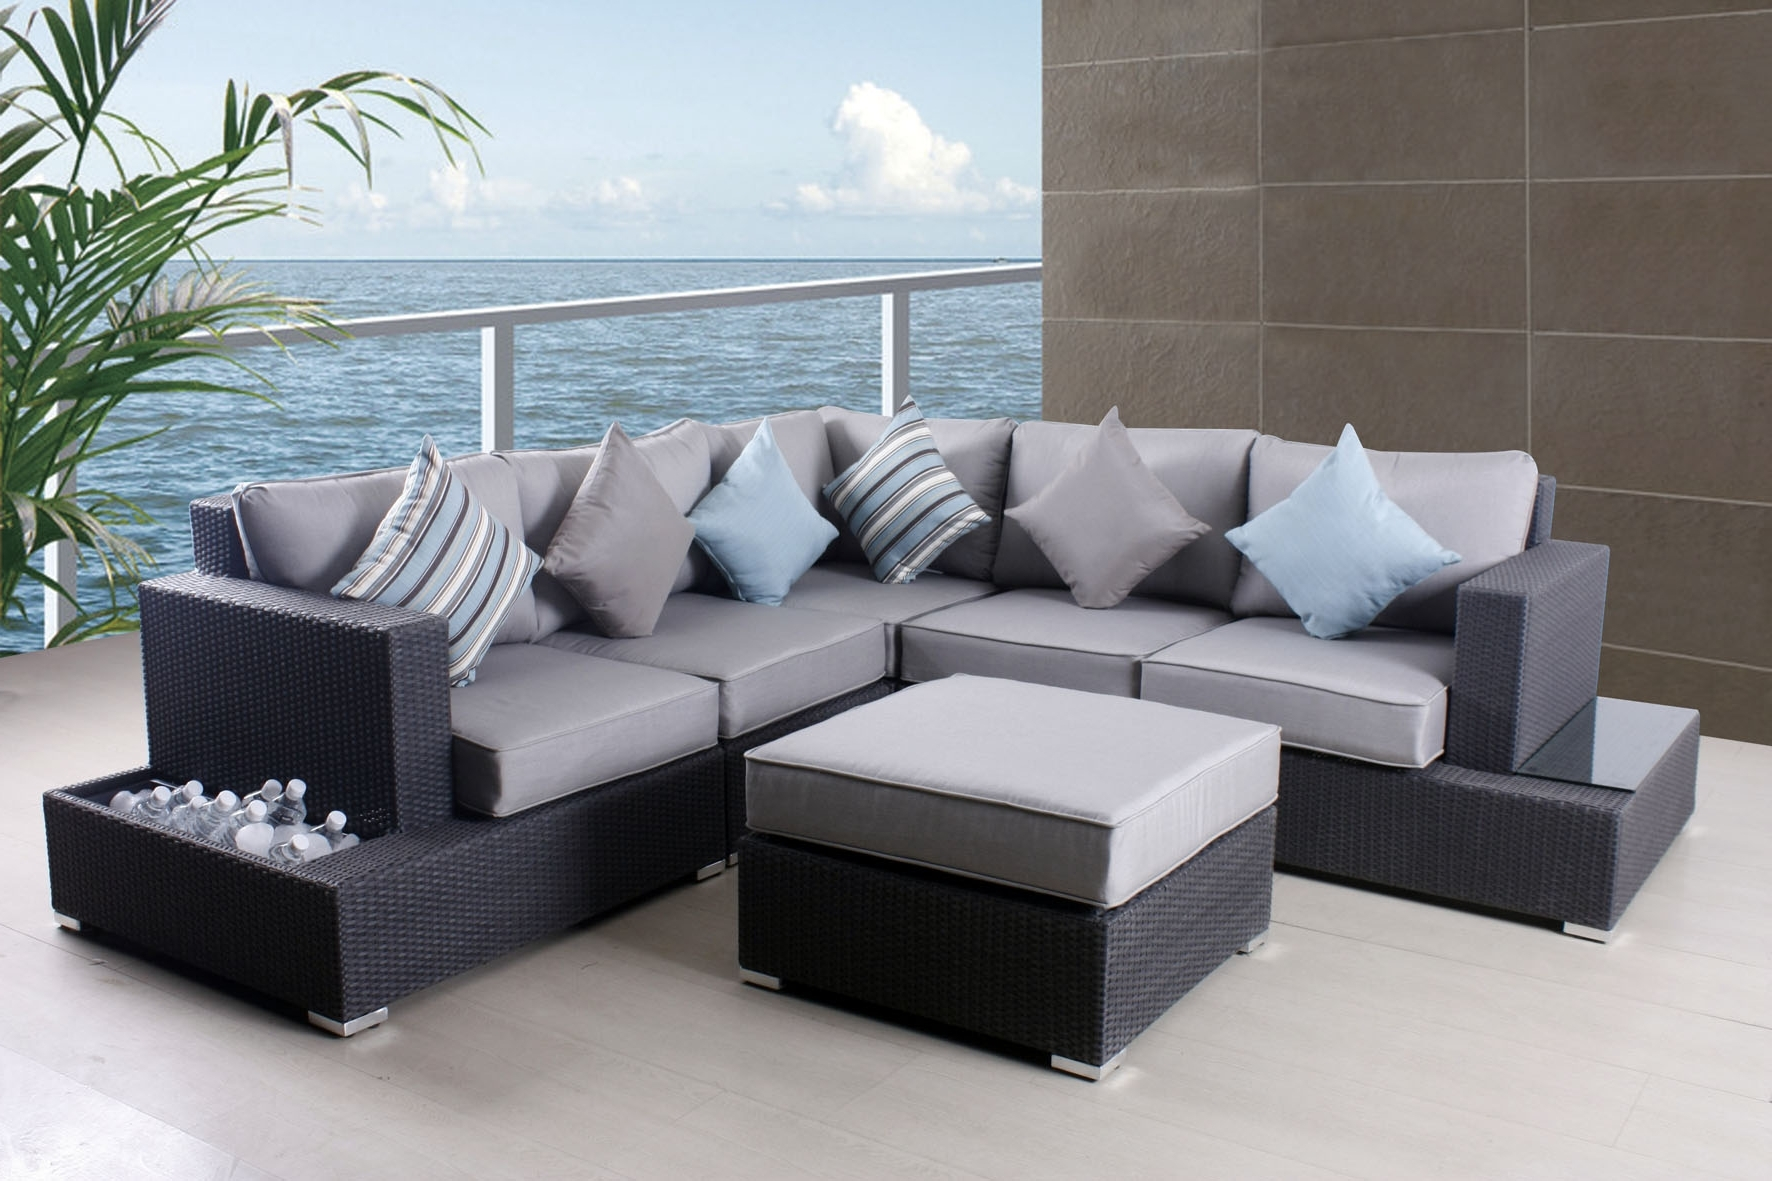 Popular Stylish Grey Patio Furniture Patio Grey Patio Furniture Sofa Set Pertaining To Grey Patio Conversation Sets (View 14 of 15)